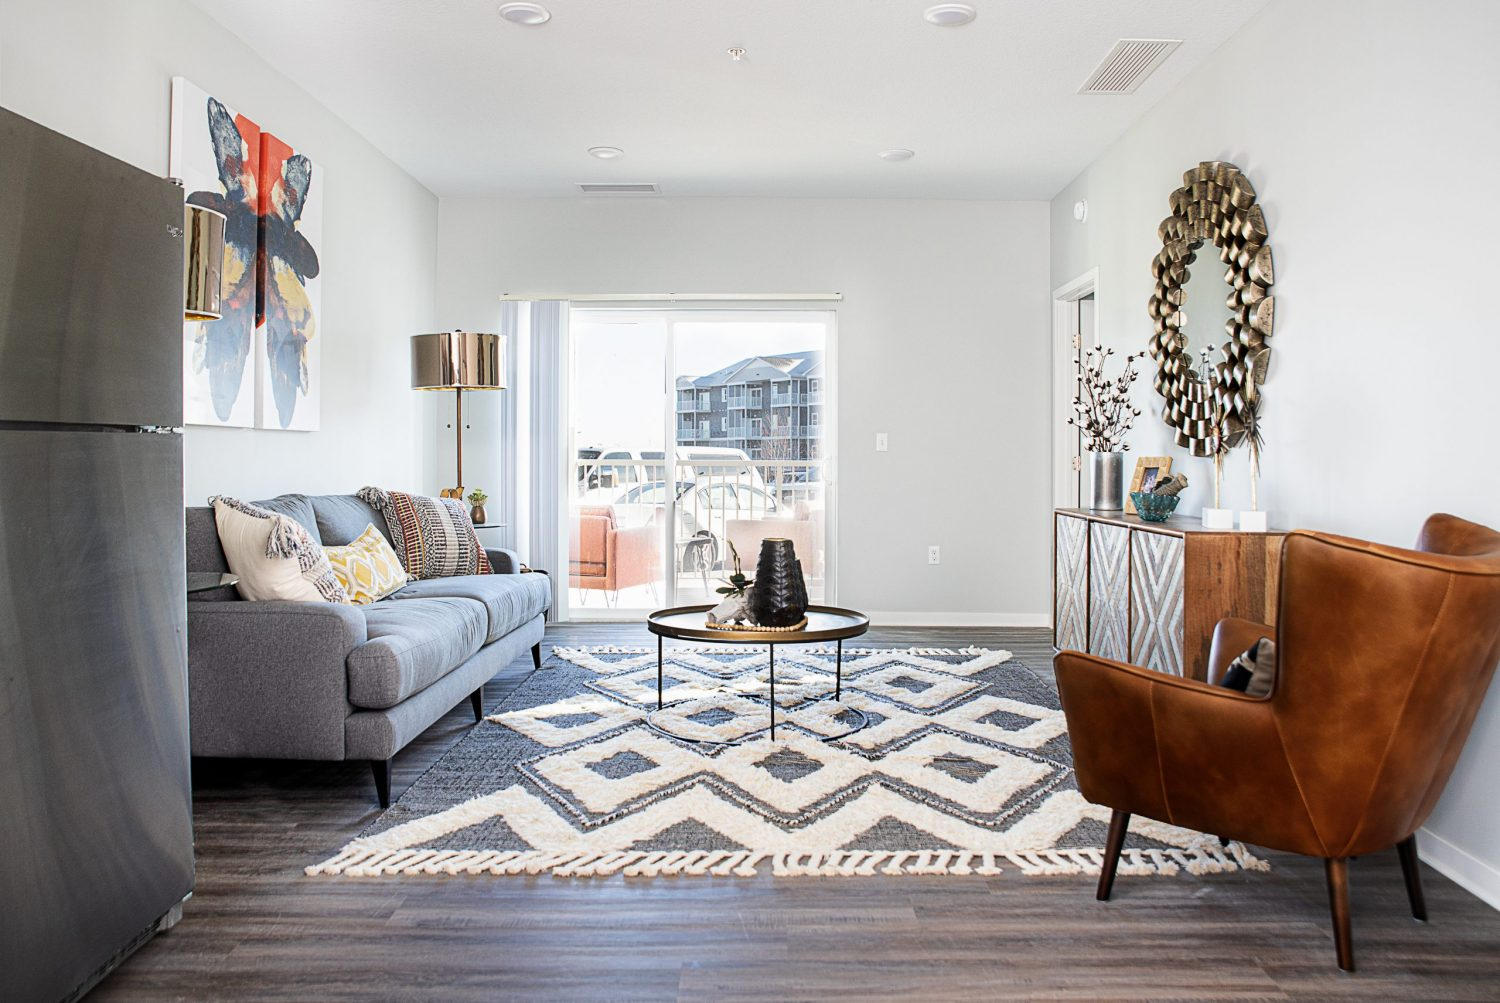 living room with furniture